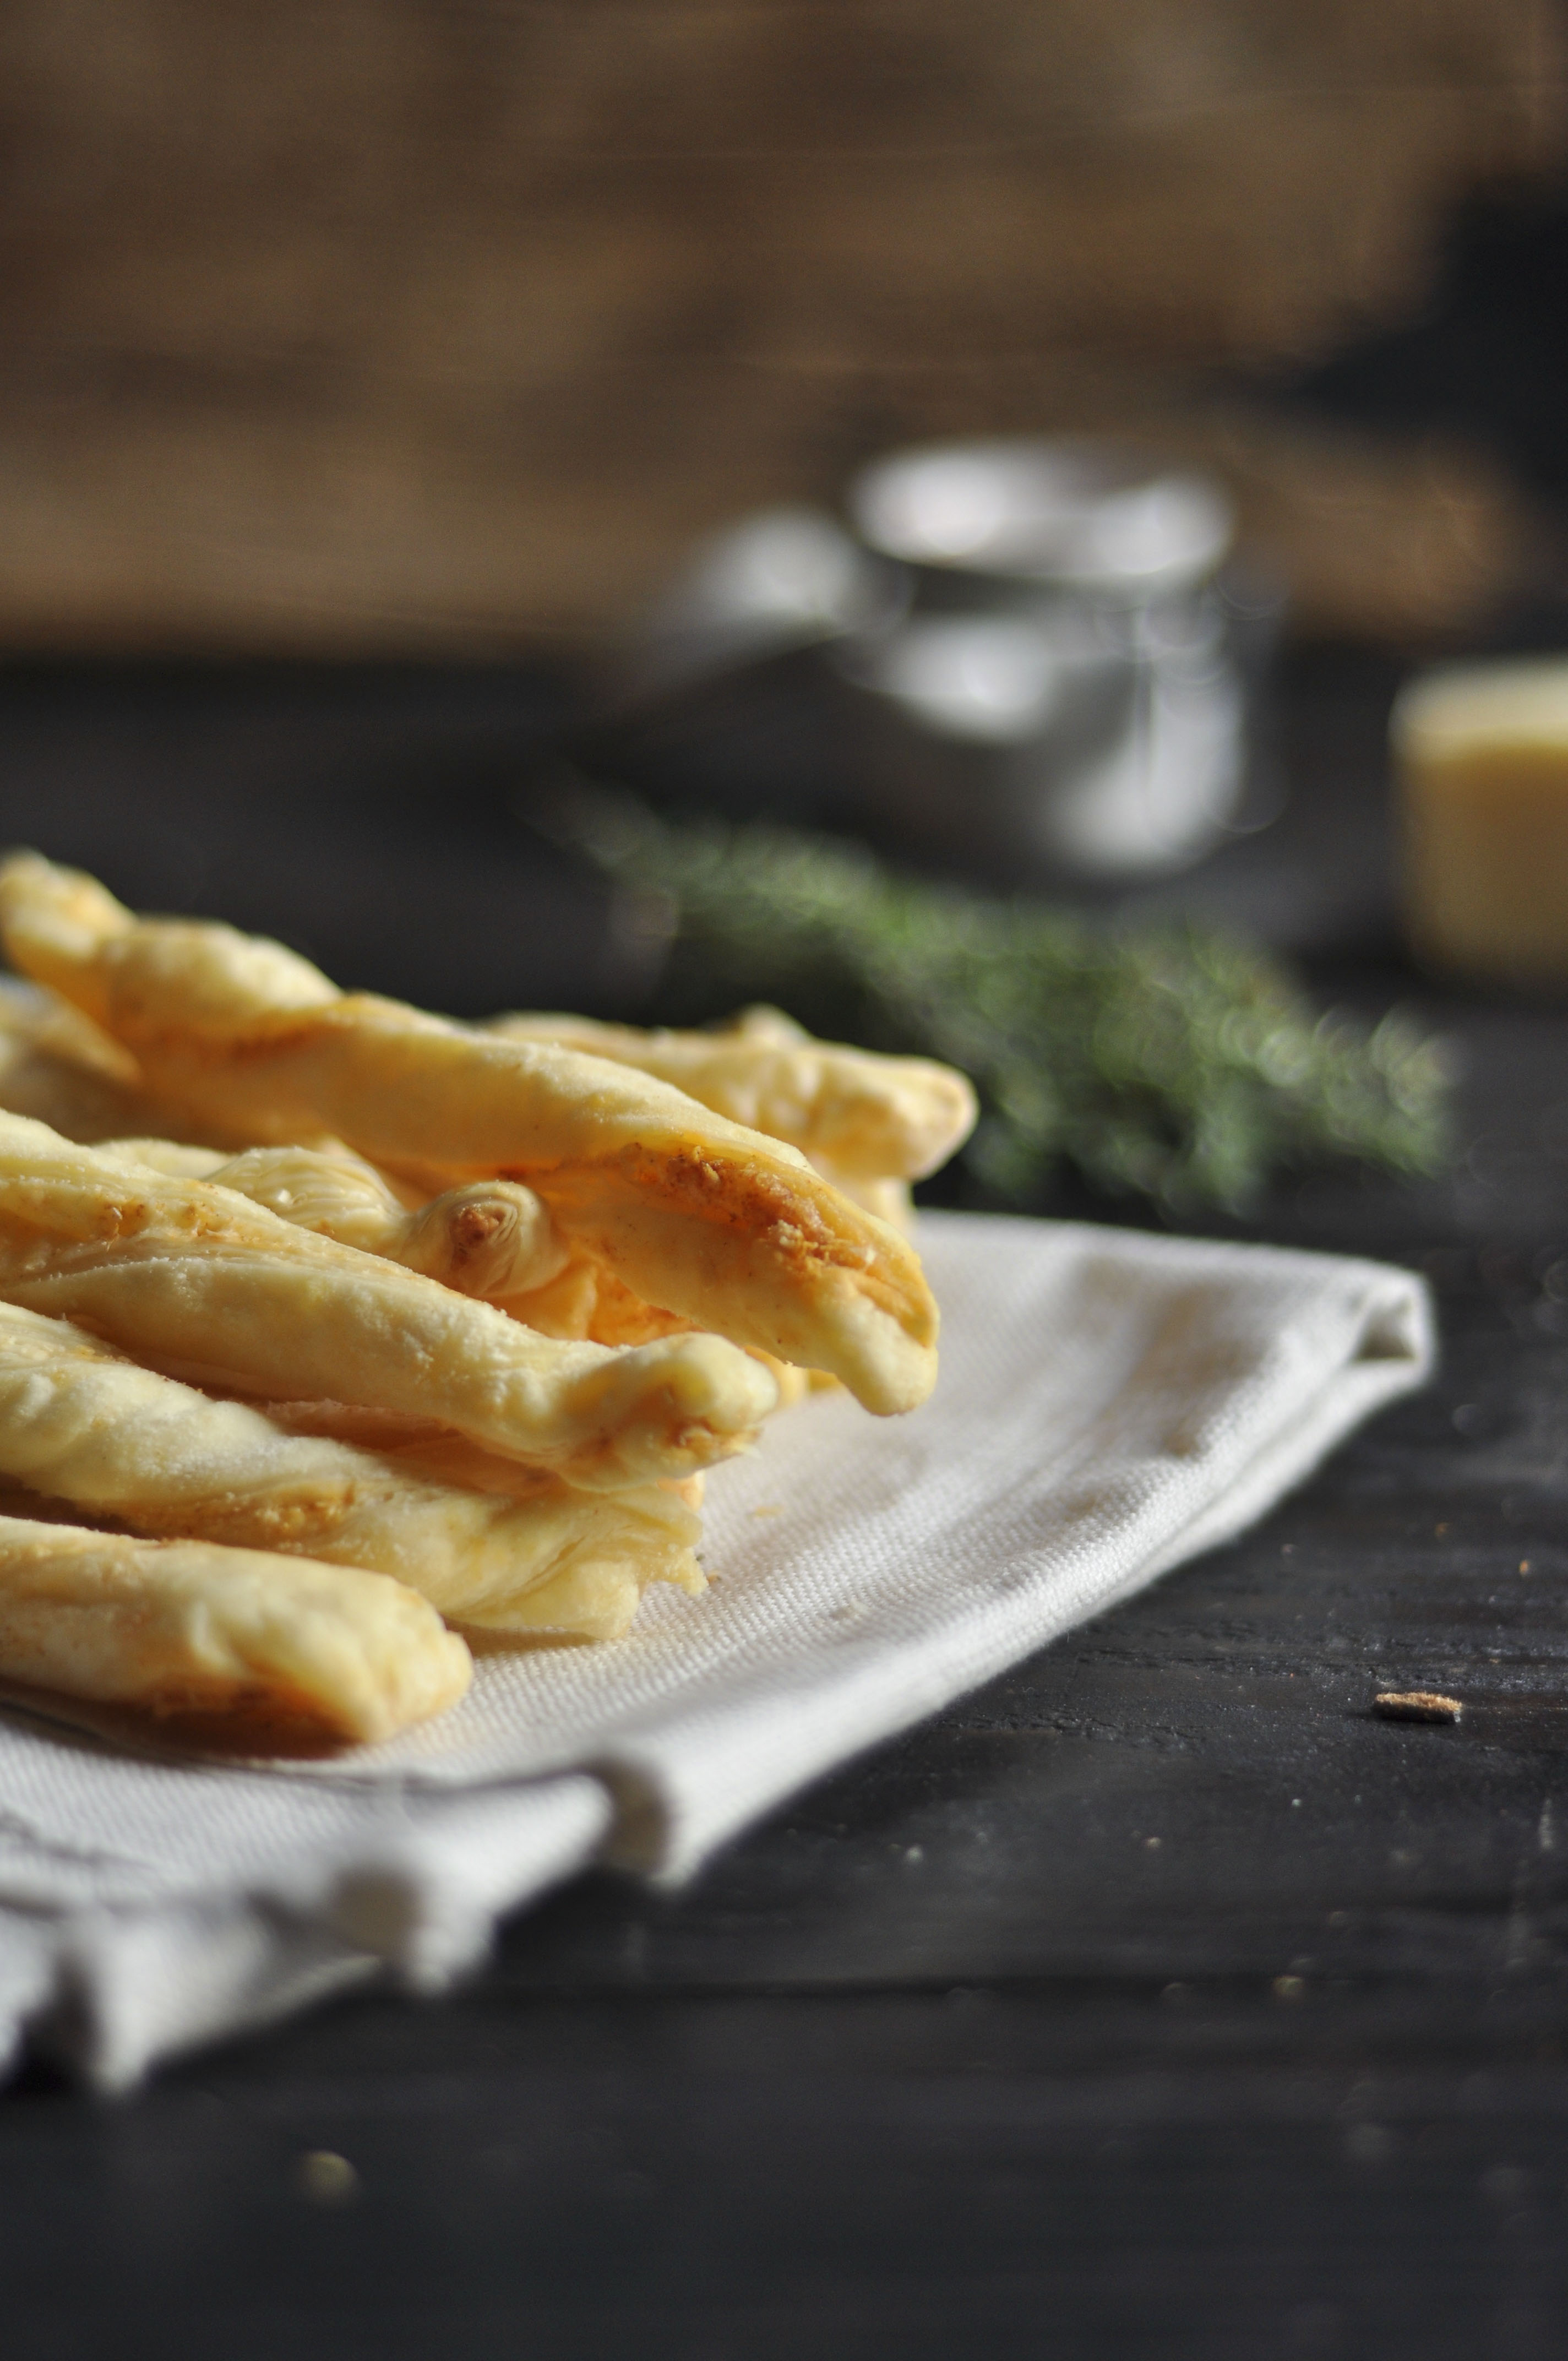 smokey cheese straws